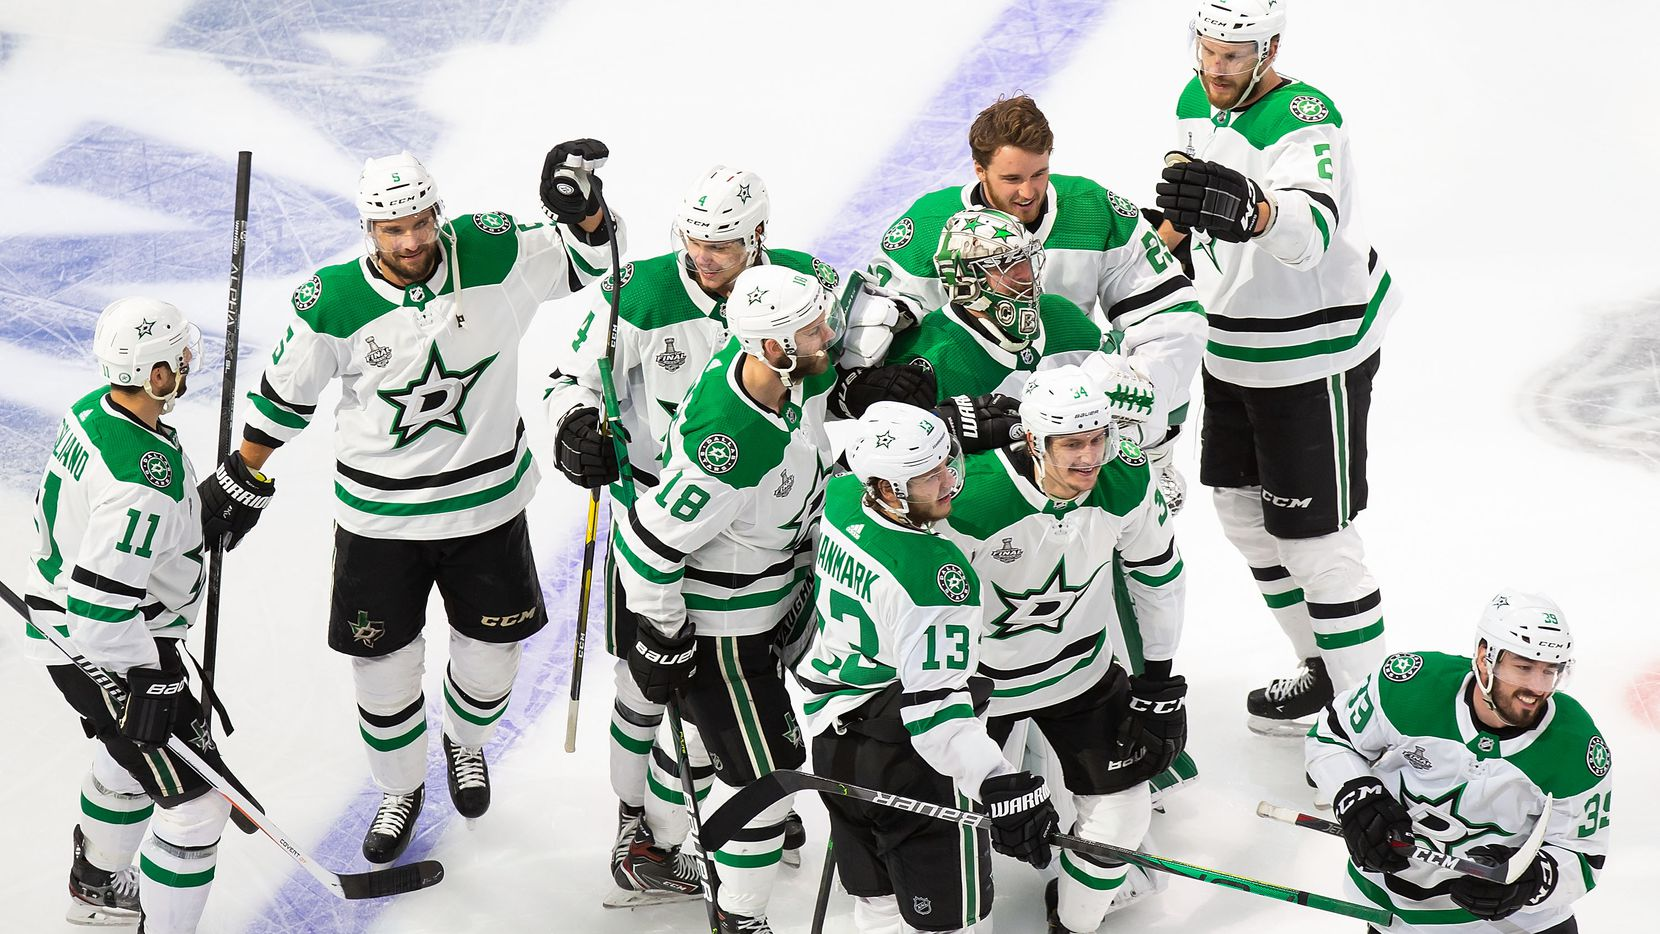 The Dallas Stars celebrate Corey Perry's game winning goal against the Tampa Bay Lightning during Game Five of the Stanley Cup Final at Rogers Place in Edmonton, Alberta, Canada on Saturday, September 26, 2020.